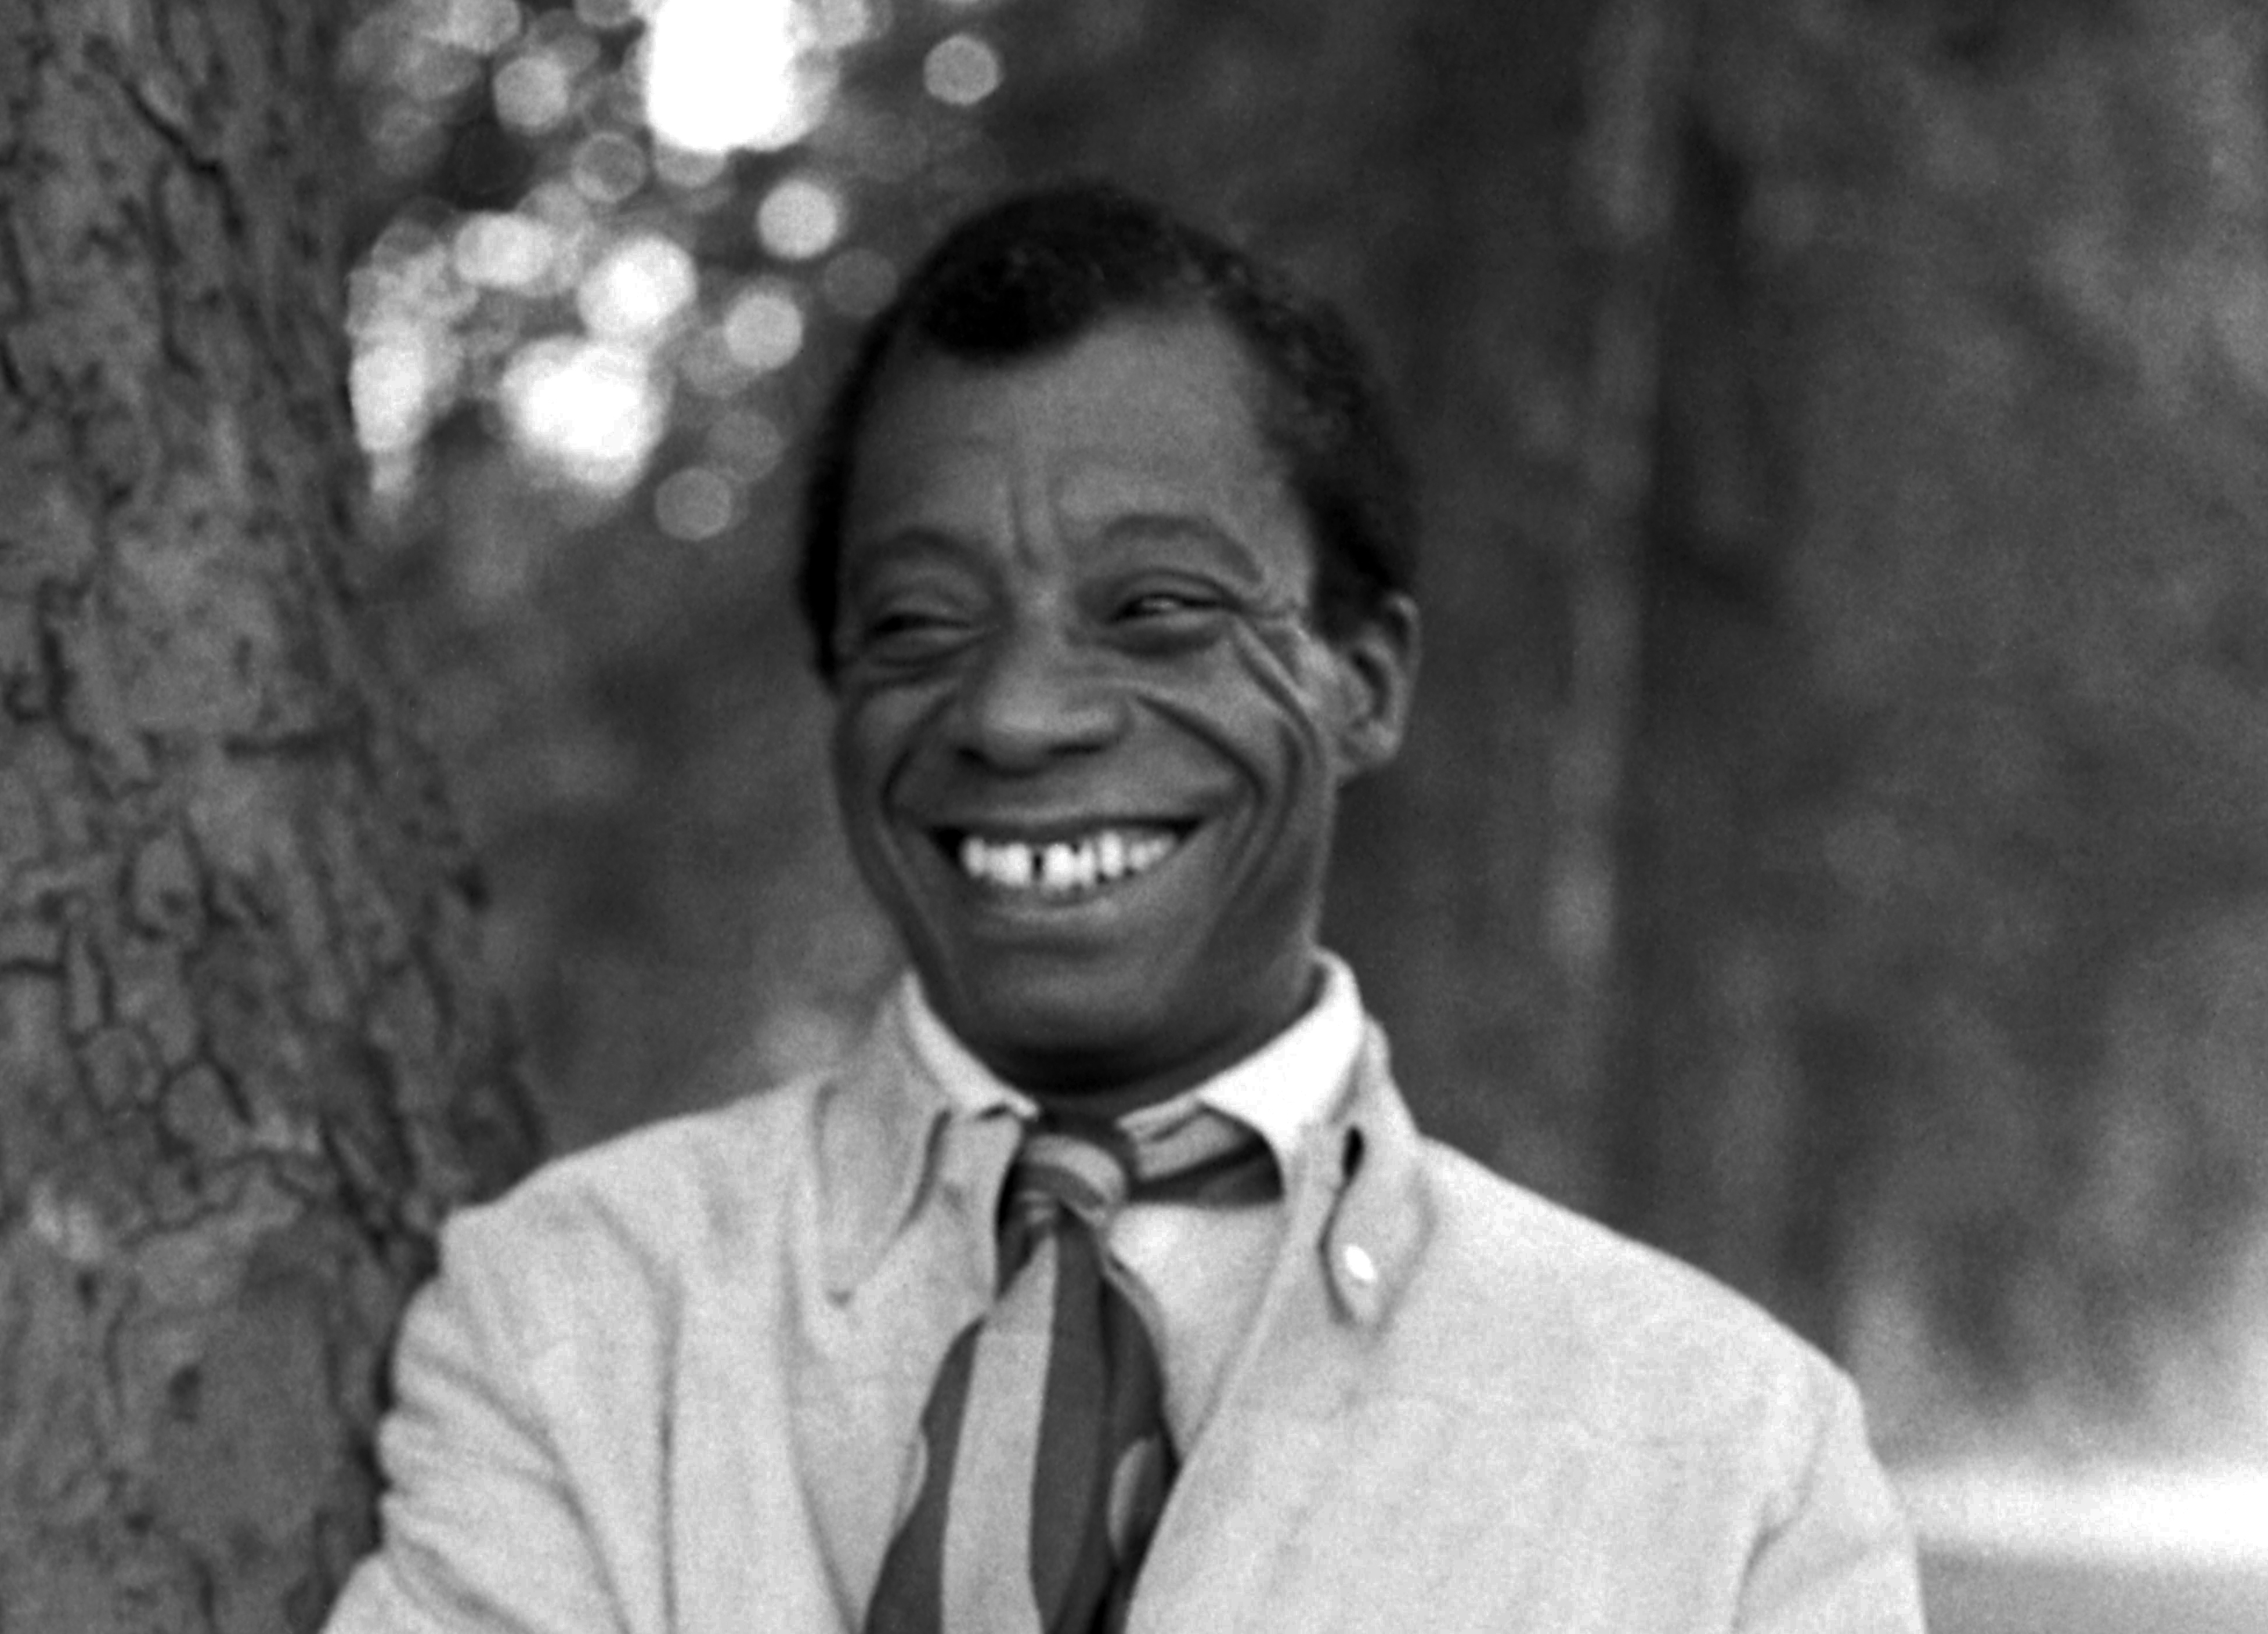 James Baldwin in Hyde Park, 1969. Original image cropped. Attribution: Allan Warren [CC BY-SA 4.0 (https://creativecommons.org/licenses/by-sa/4.0)]. Source: https://commons.wikimedia.org/wiki/File:James_Baldwin_08_Allan_Warren.jpg.